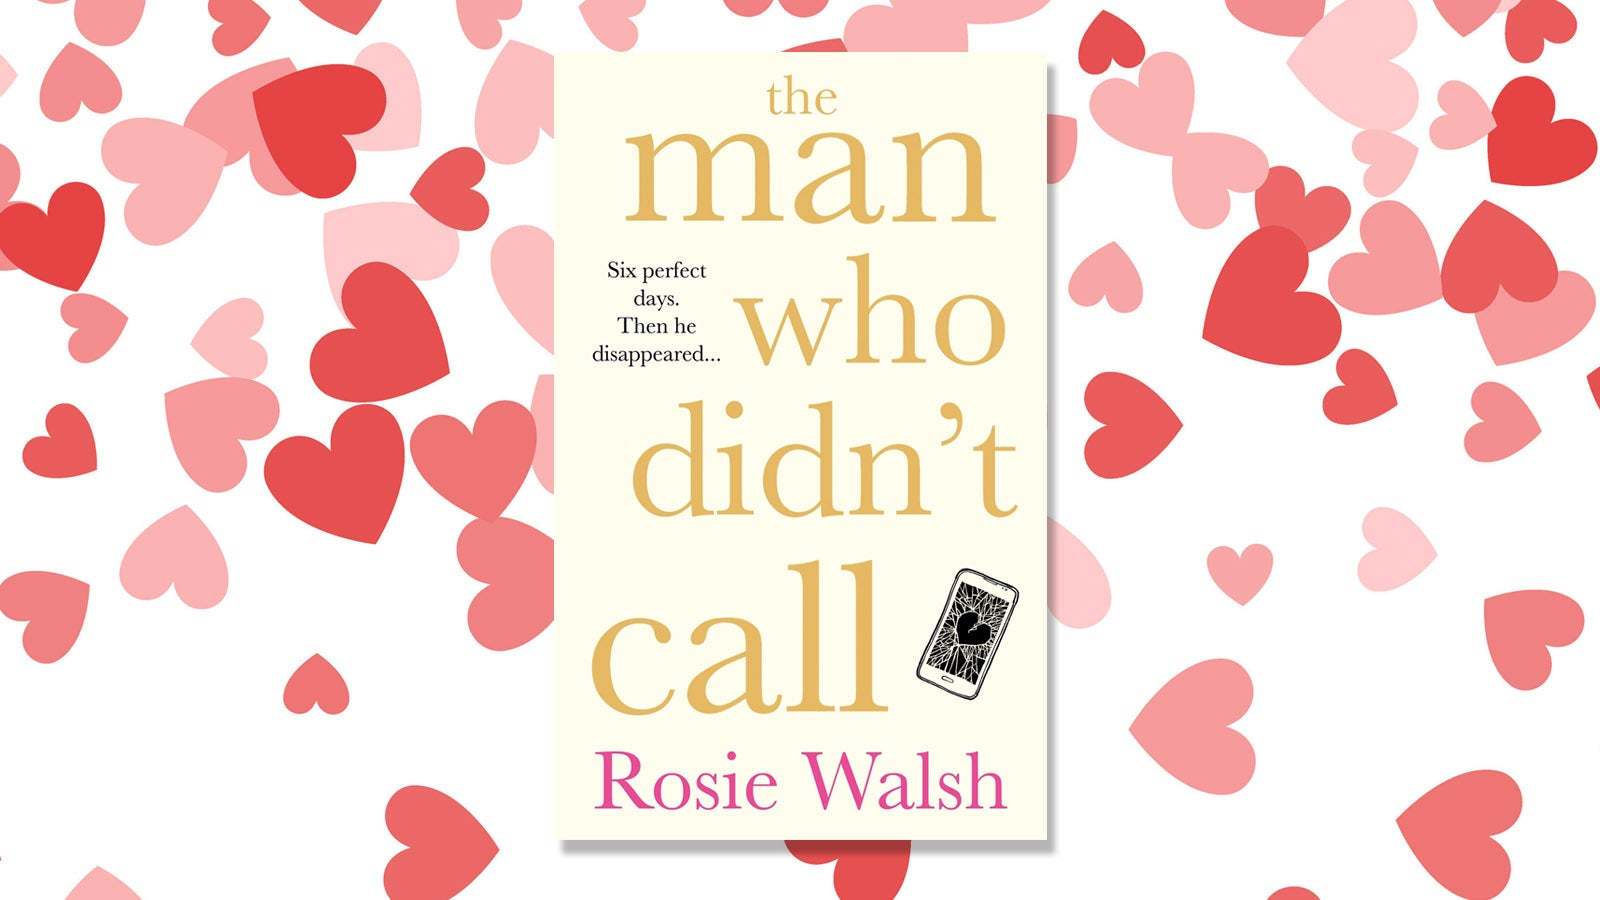 the book cover of The Man Who Didn't call against a background of hearts